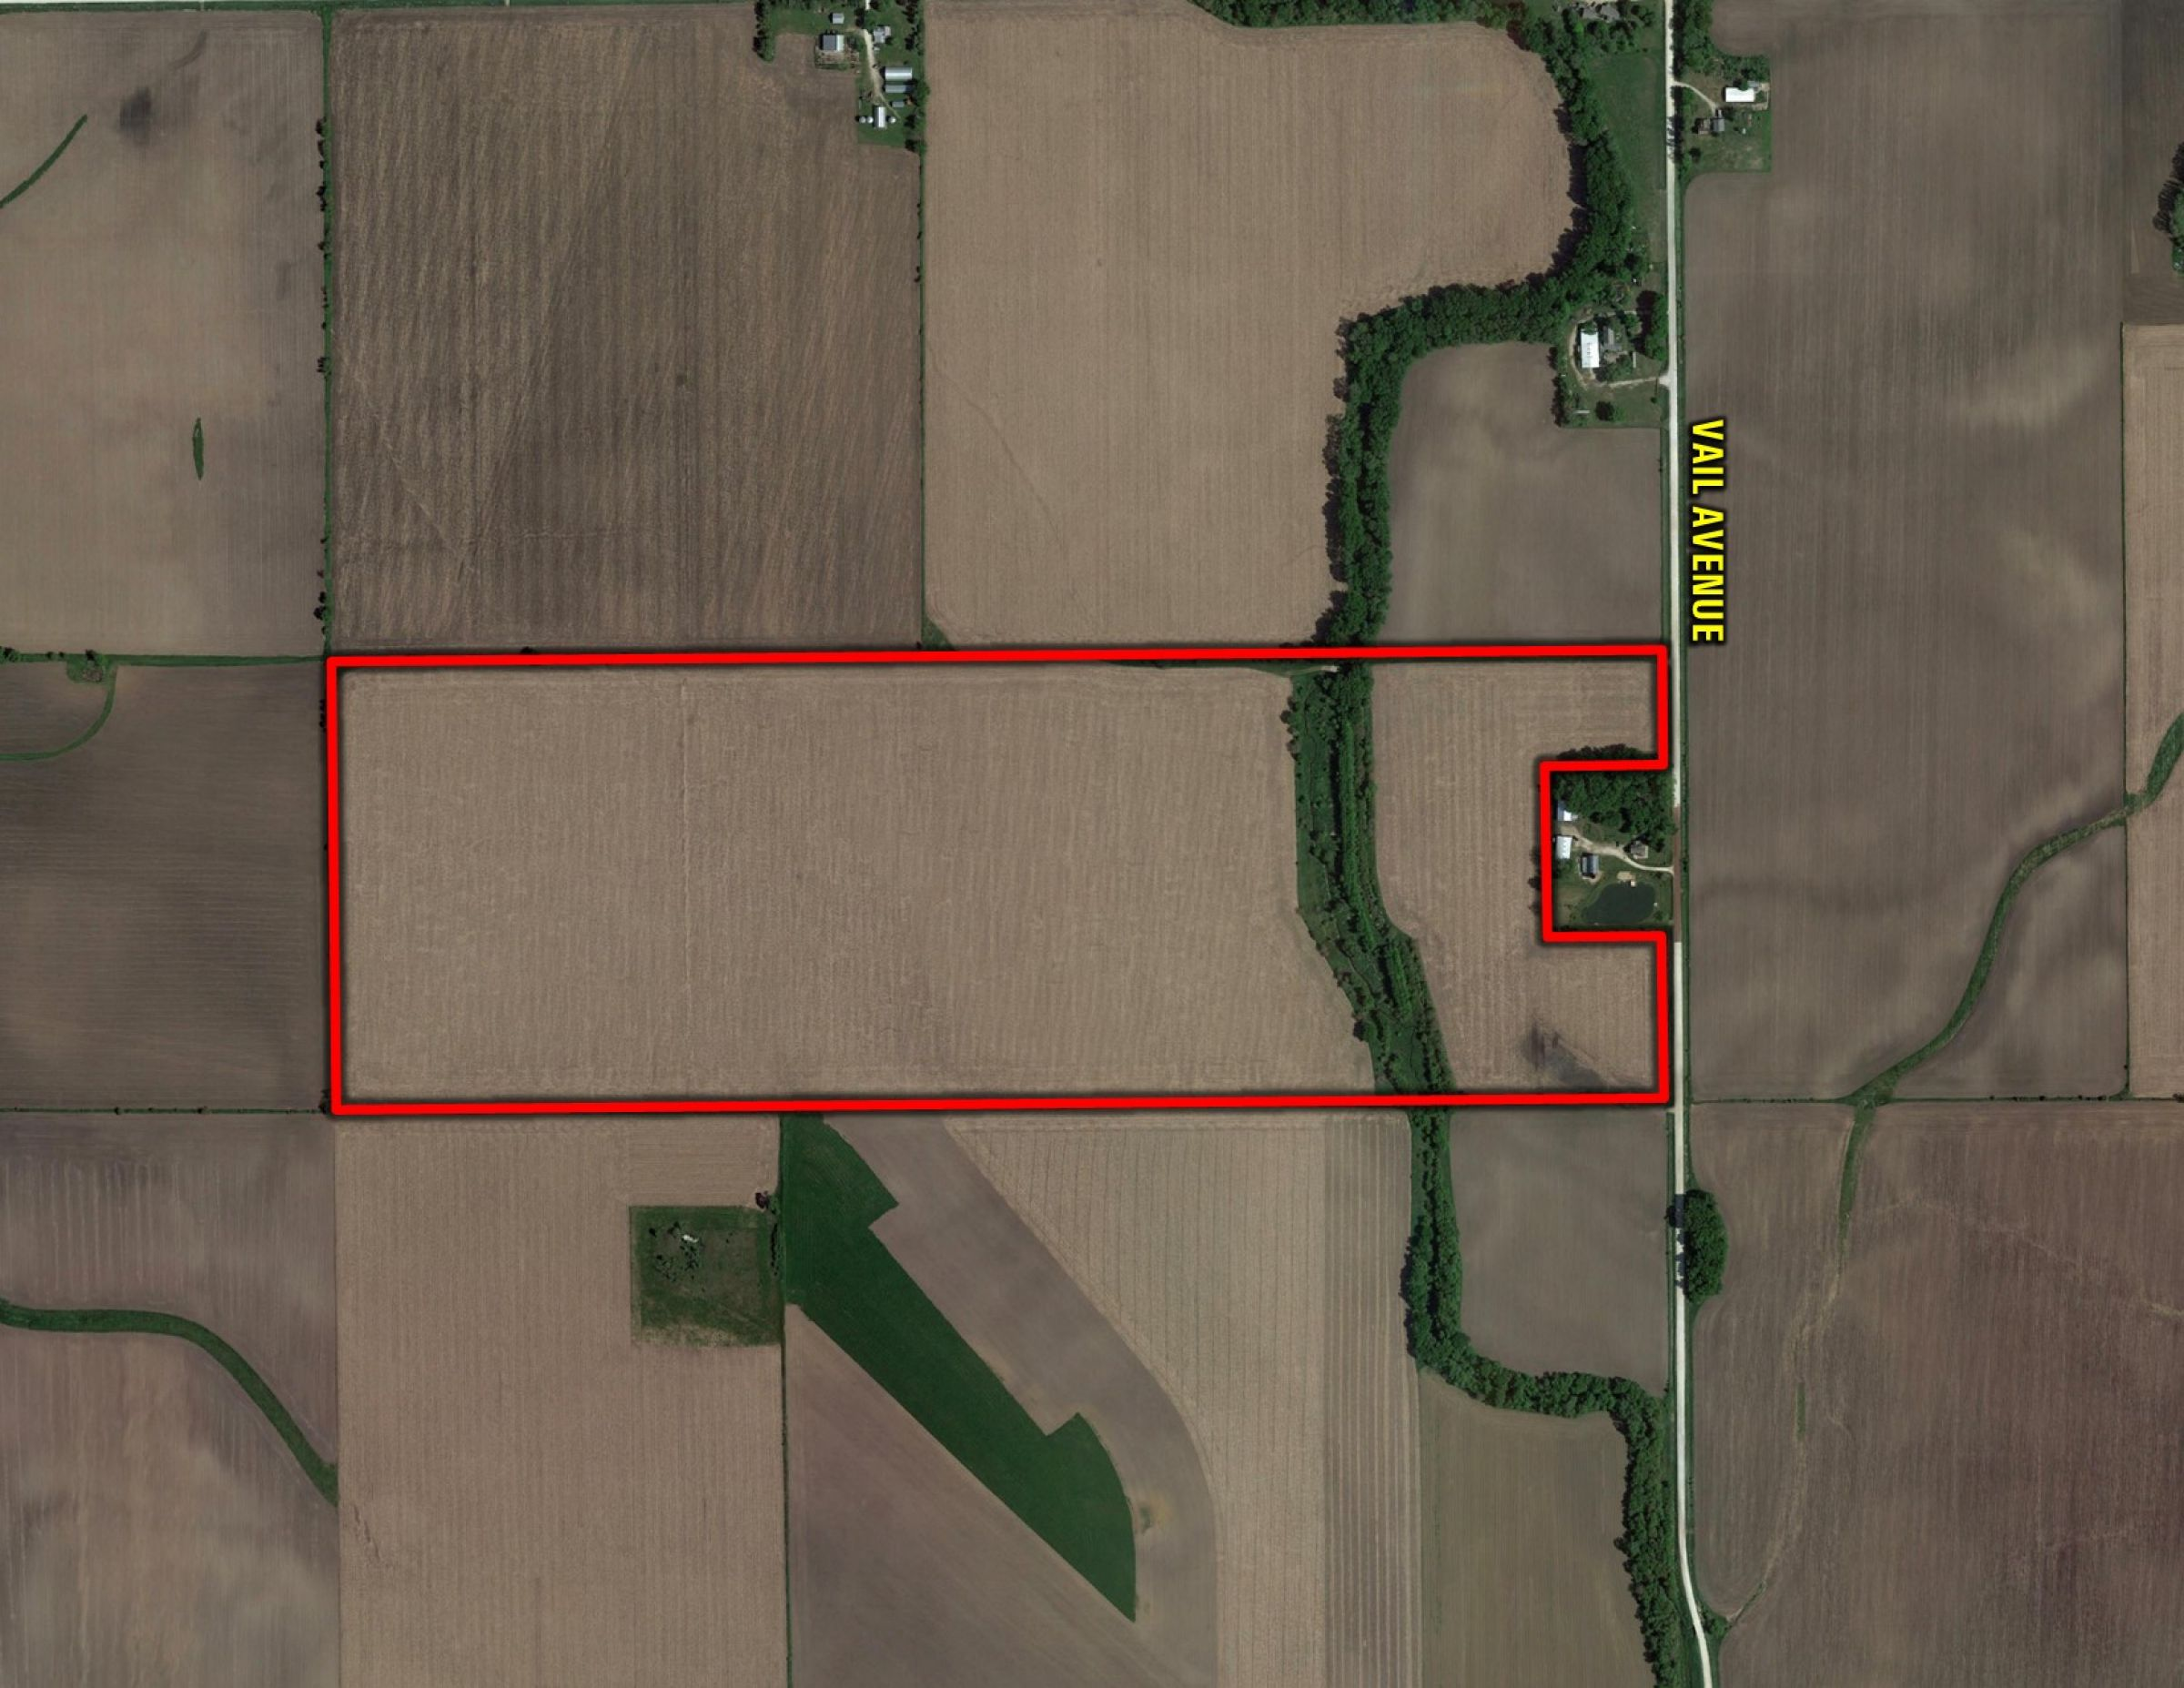 floyd-county-iowa-80-acres-listing-number-15487-6-2021-04-26-011852.jpg